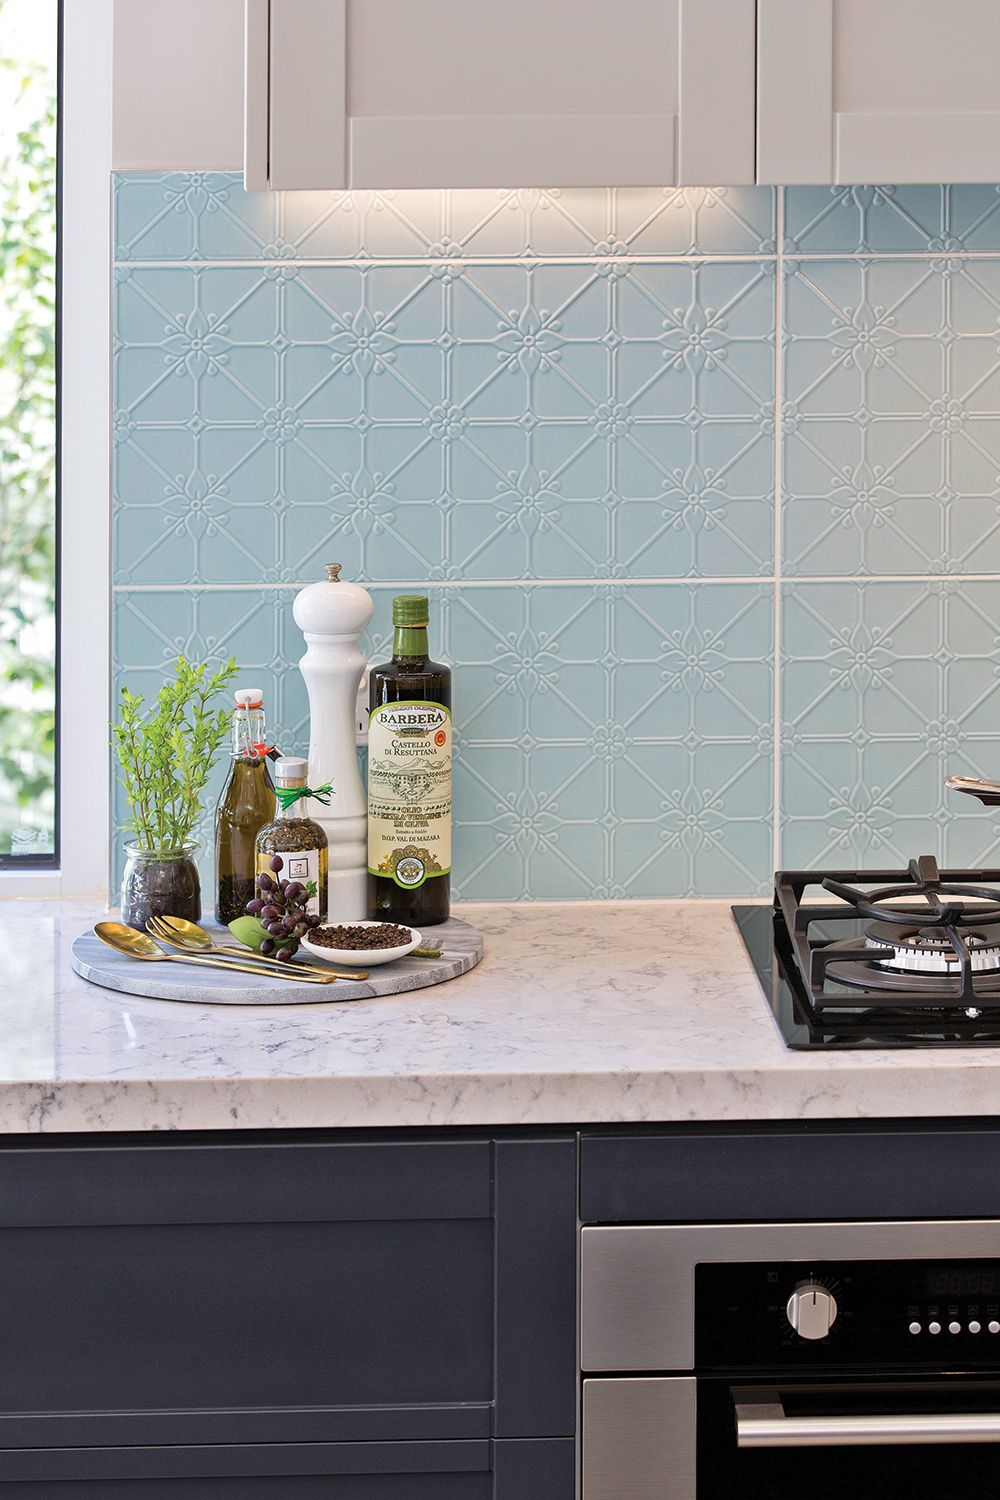 Tiled splashback inspired by the pressed metal roofs of yesteryear ...